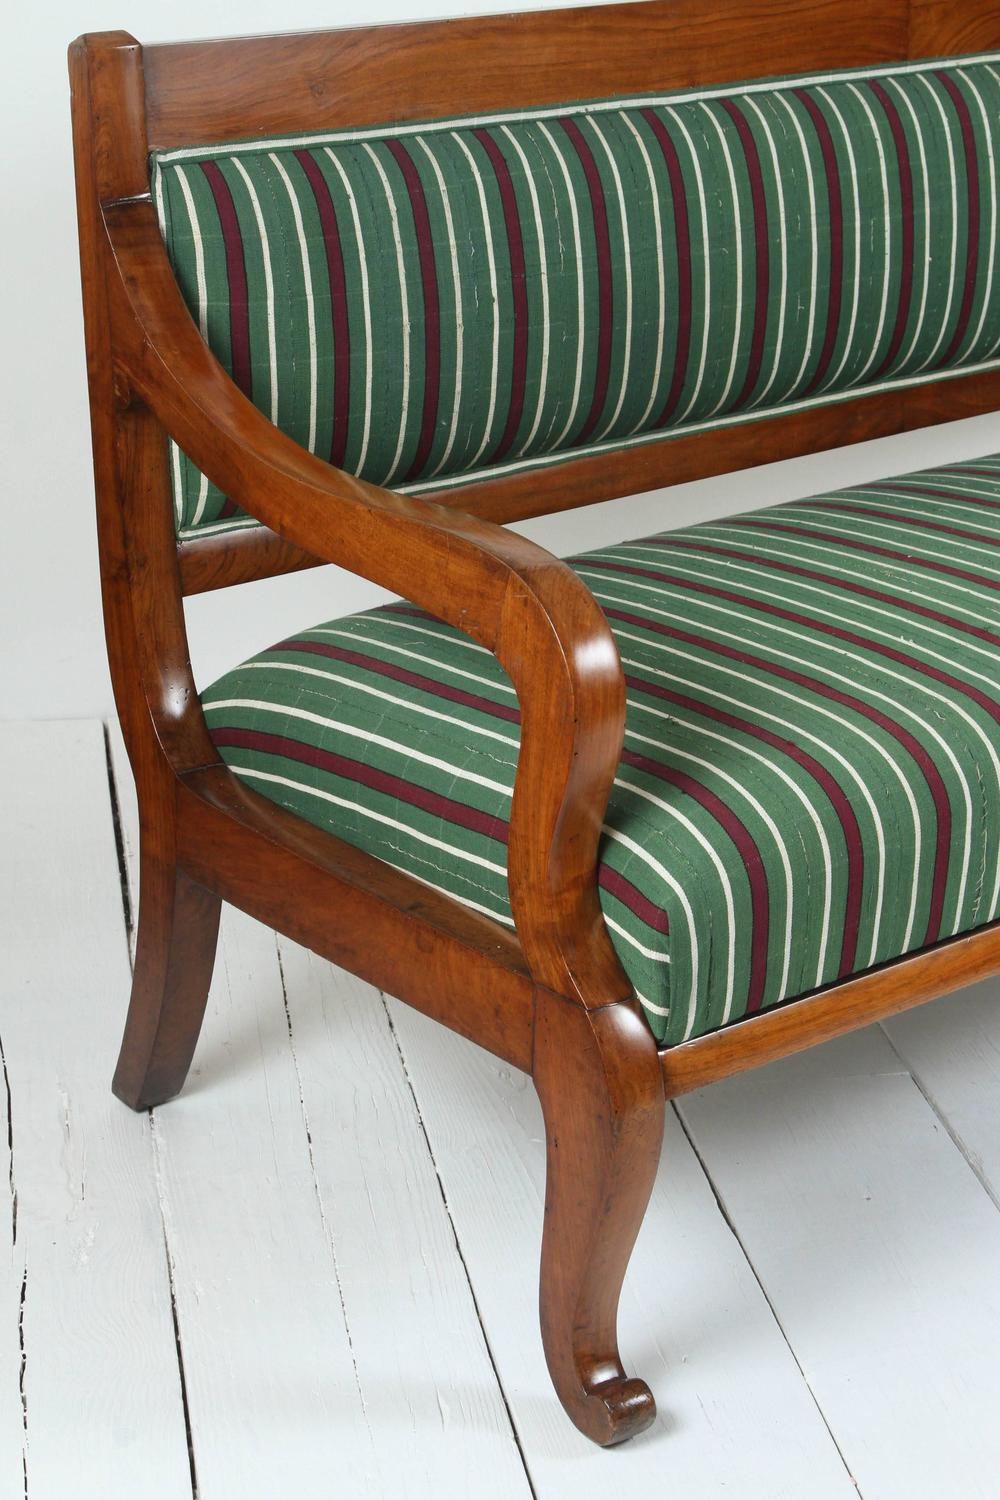 Italian Wood Bench Upholstered In Striped African Fabric